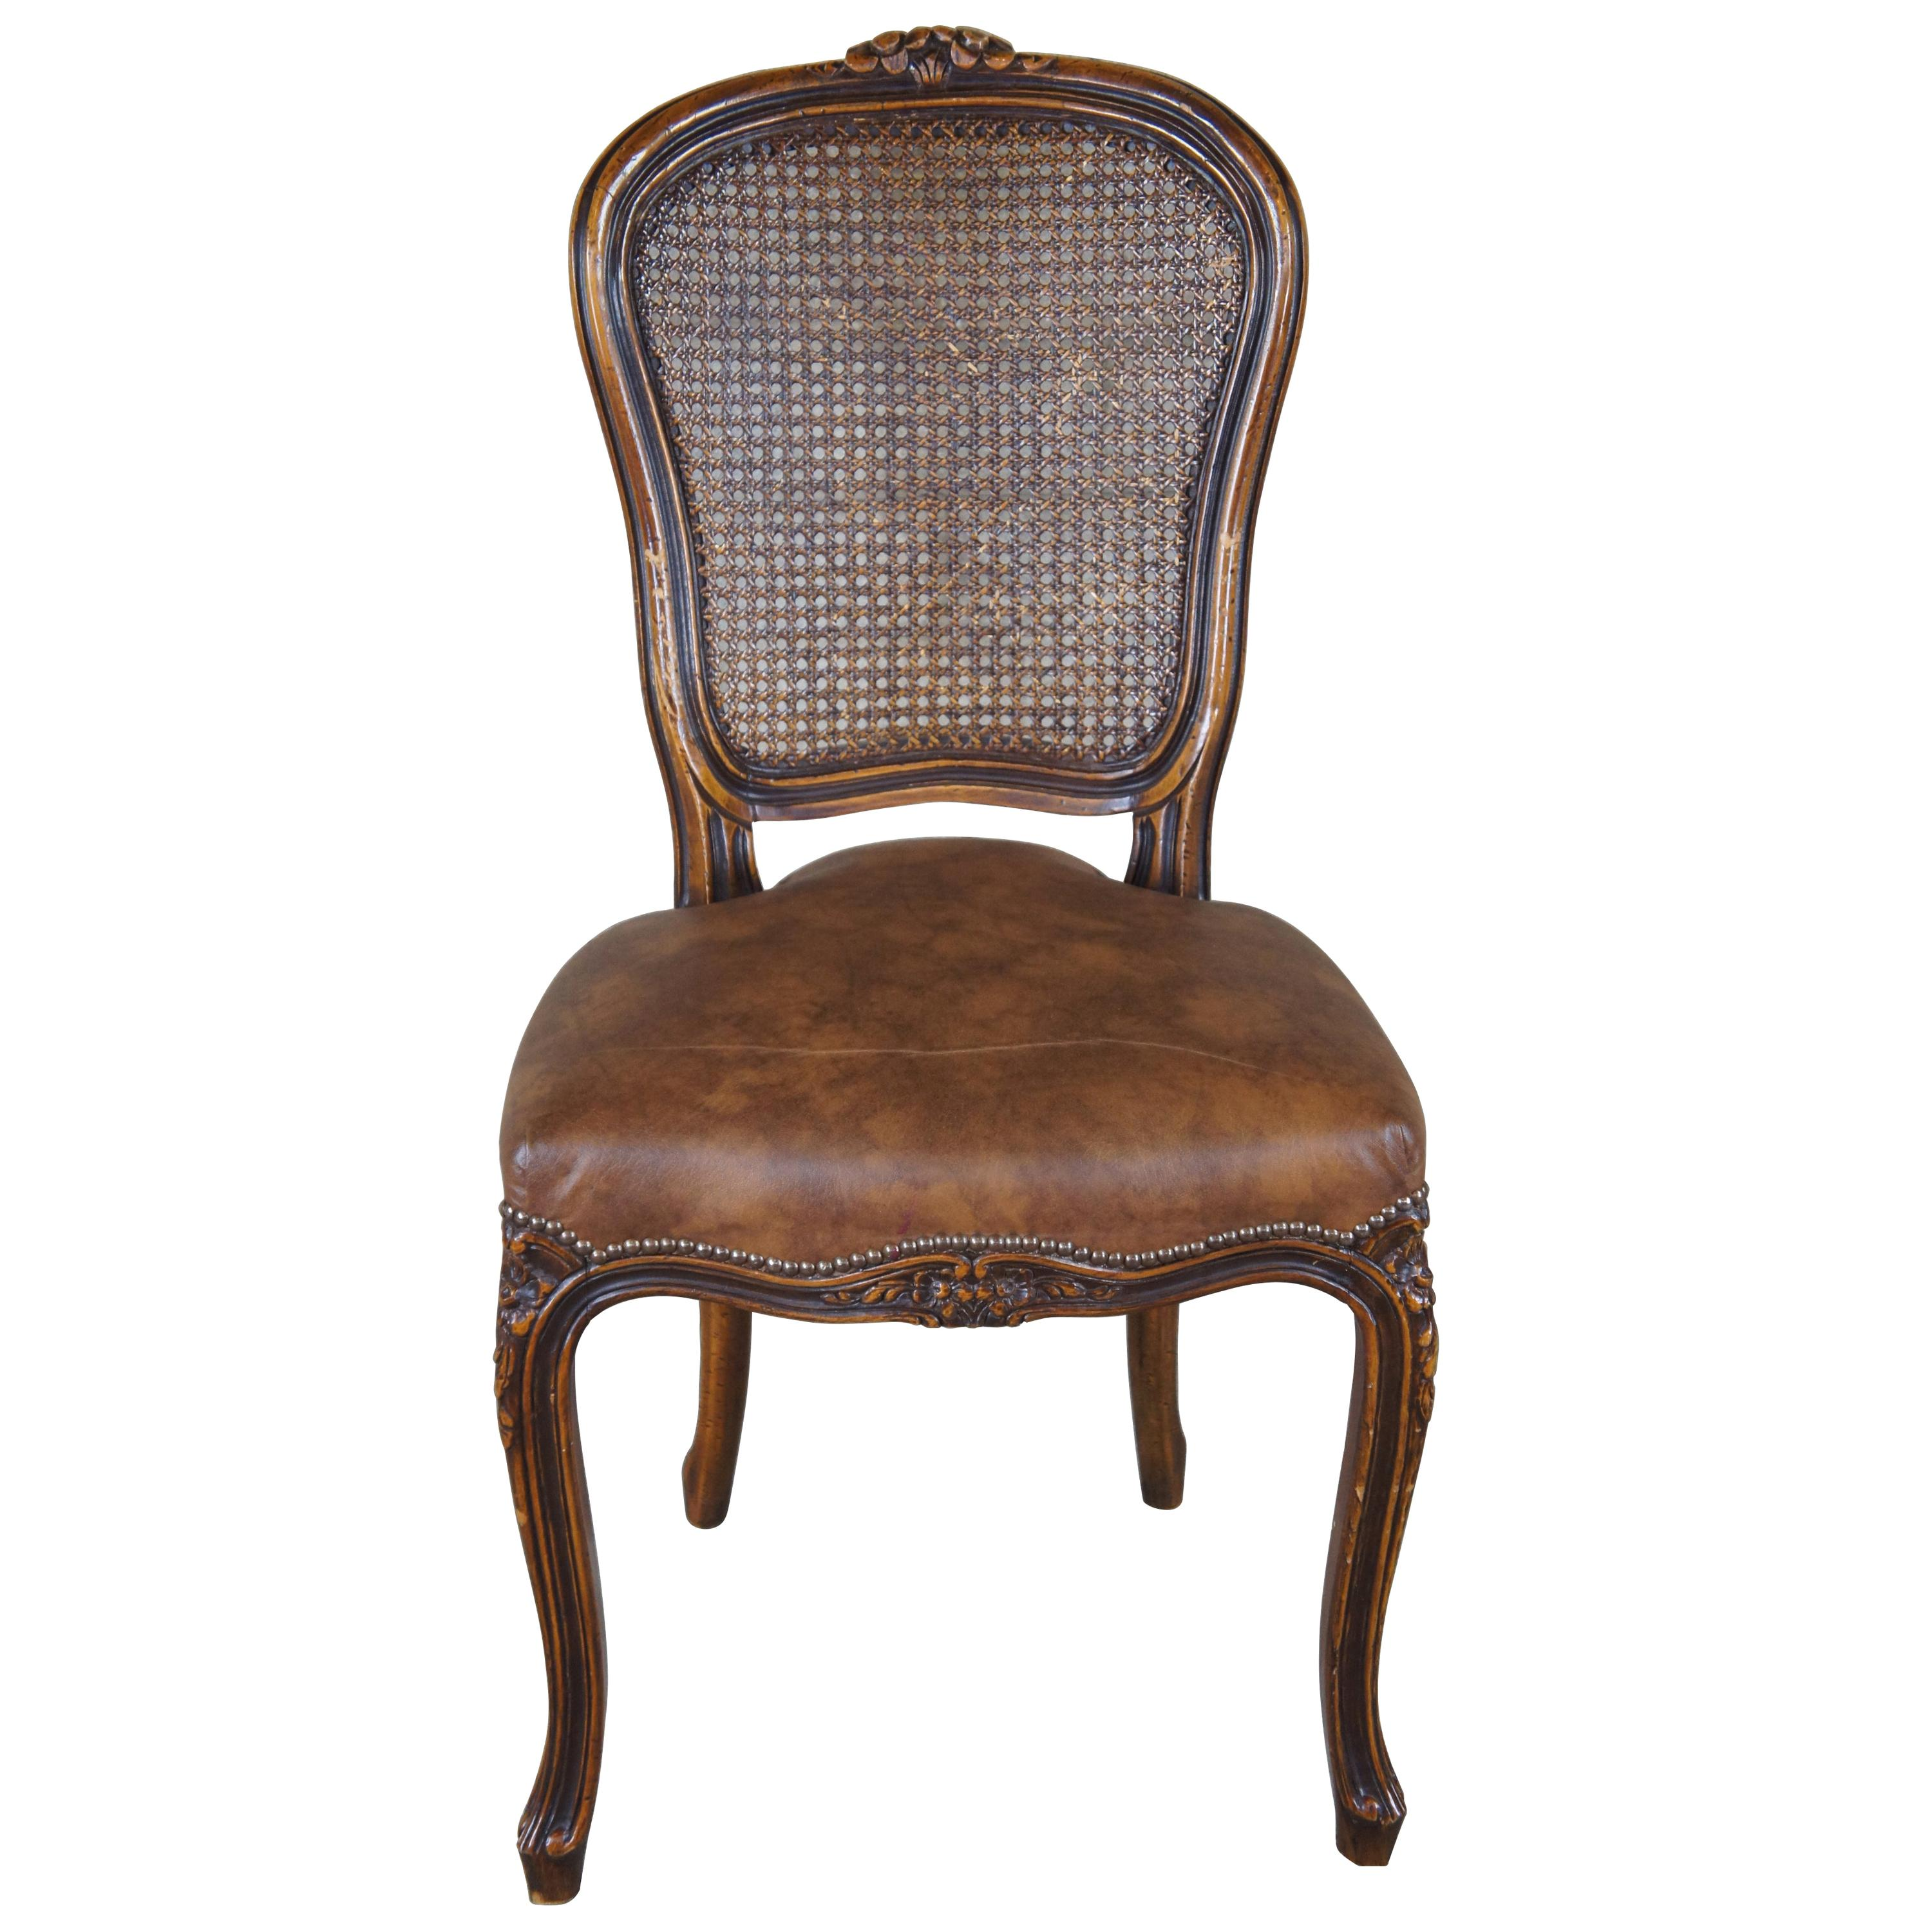 Chateau D'AX French Louis XV Caned Leather Nailhead Side Dining Chair Italian